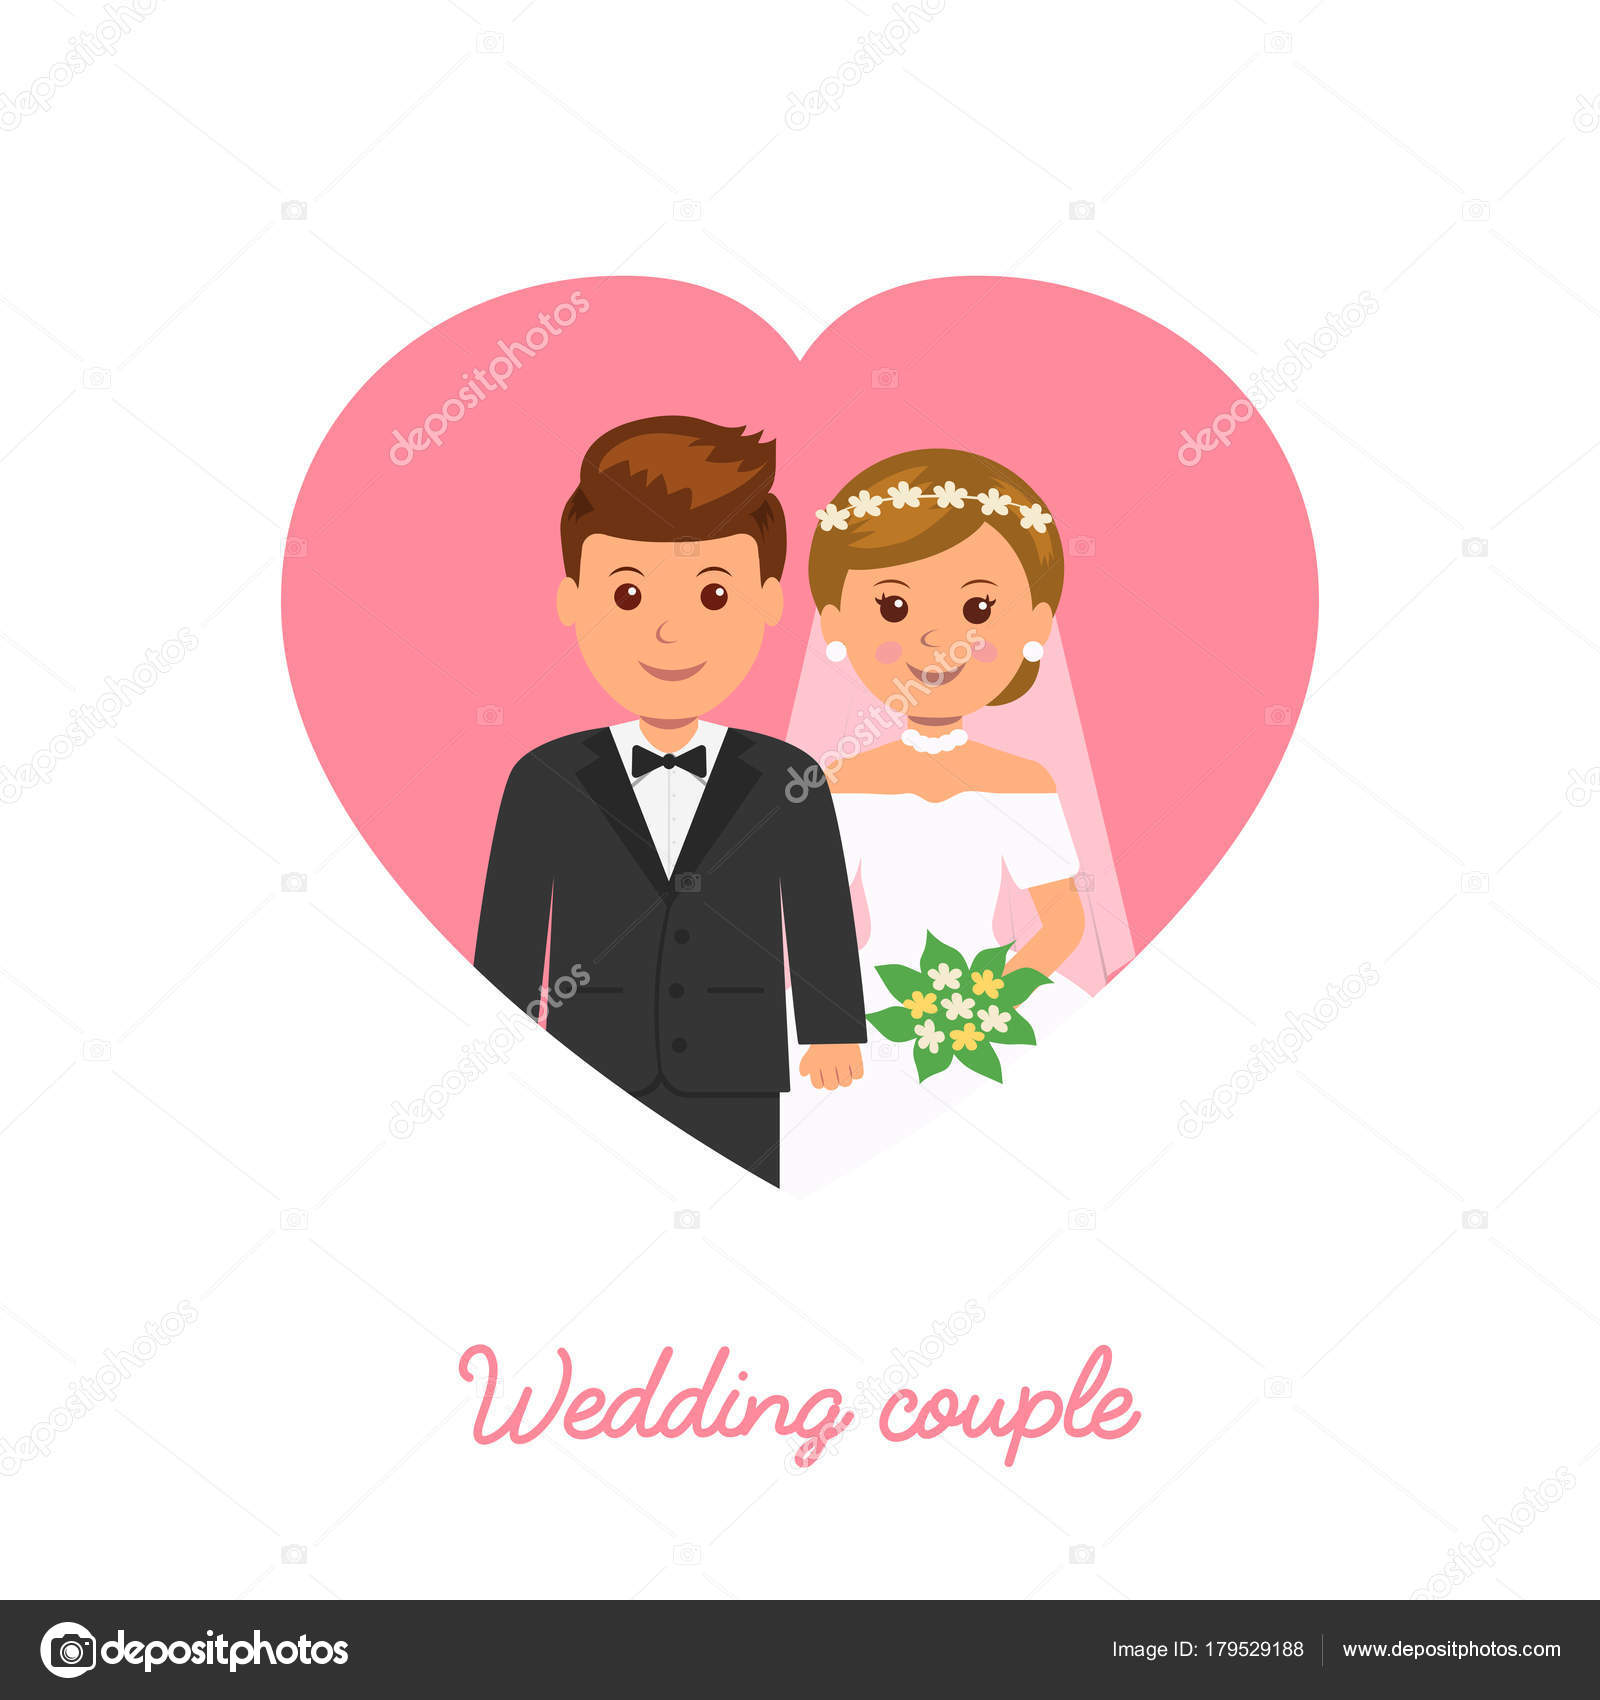 Married couple wedding icon marriage invitation stock vector marriage invitation vector illustration in flat style vector by aurora72 stopboris Gallery